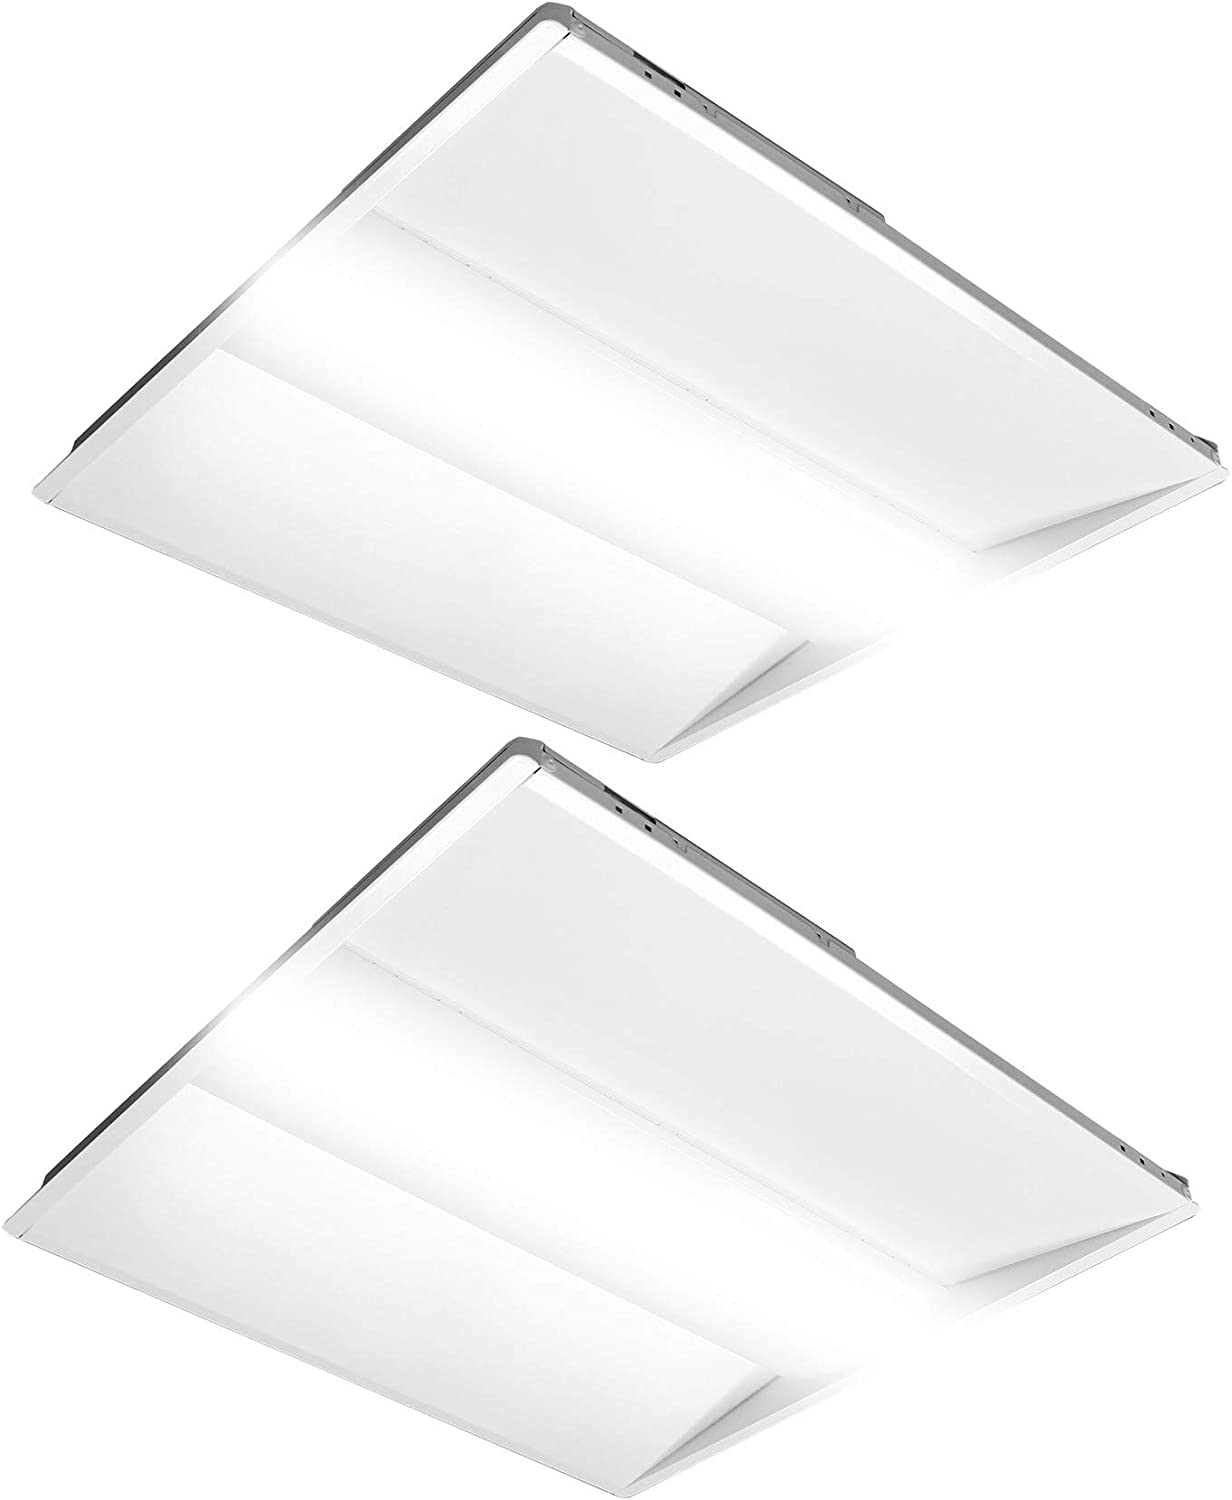 2//PACK 2x2ft 40W Led panel light 5000K Dimmable UL DLC certified troffer lamp